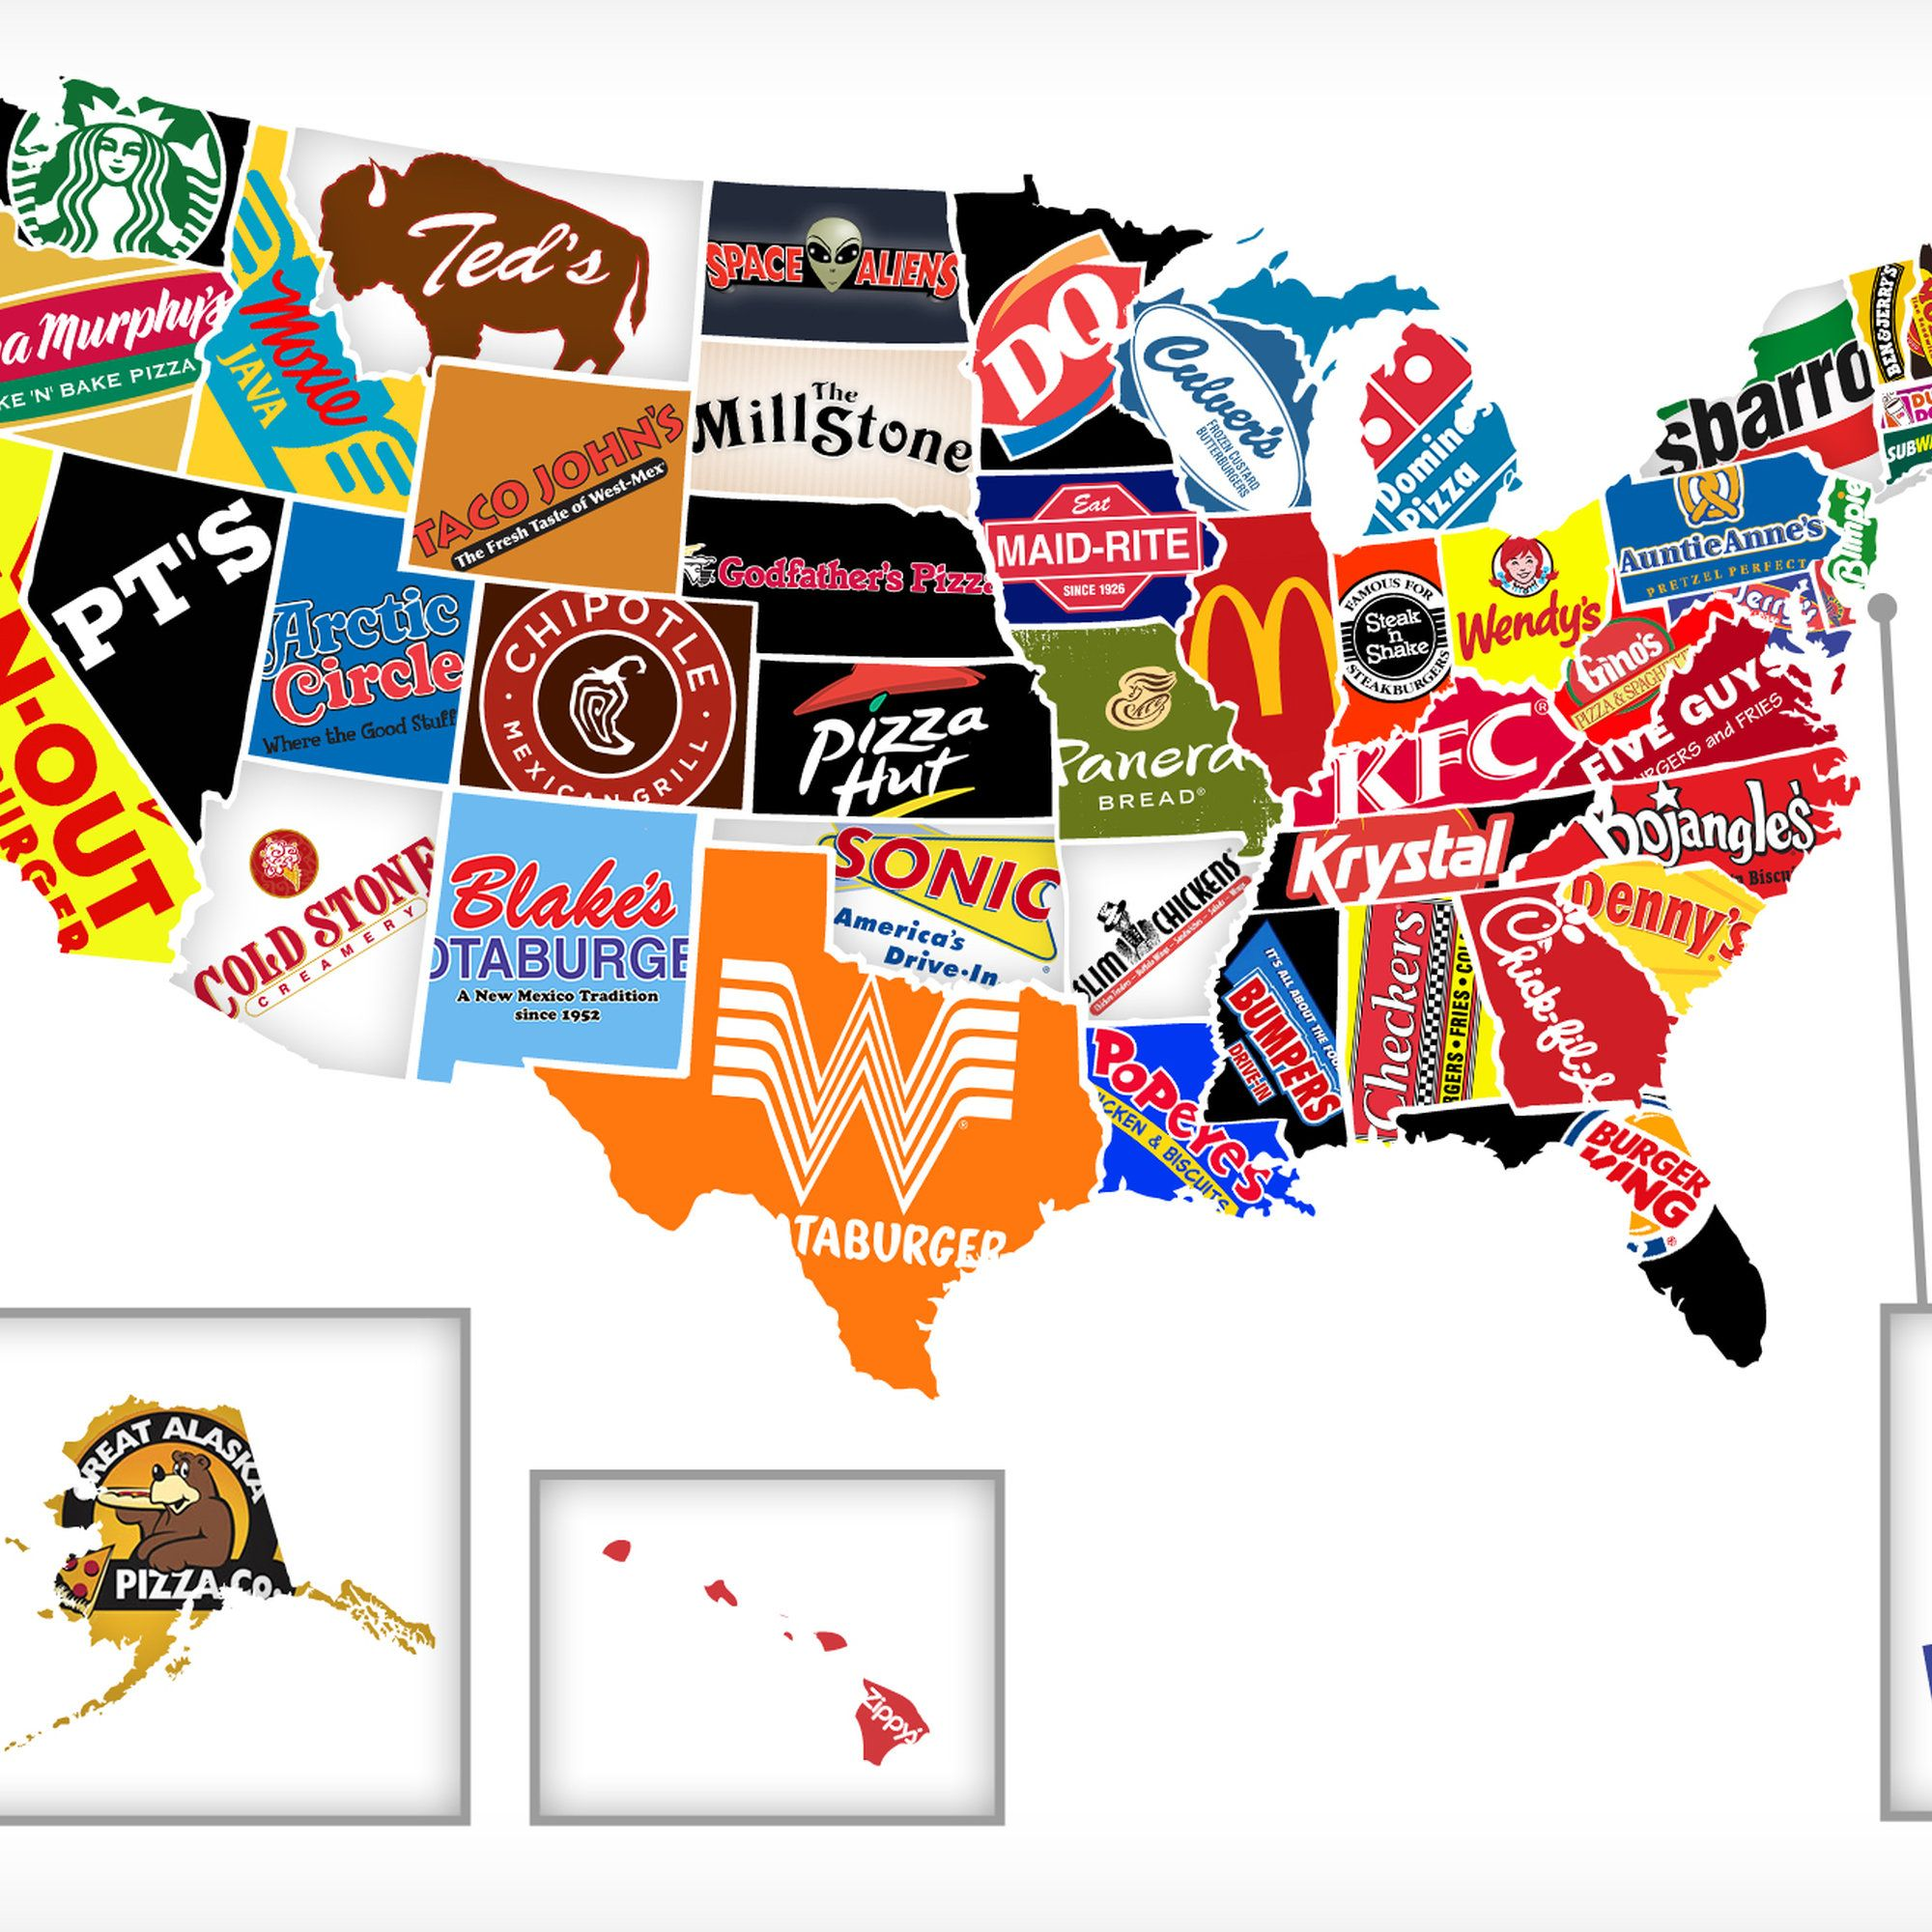 Red, White & Food Mapping all 50 states' most significant